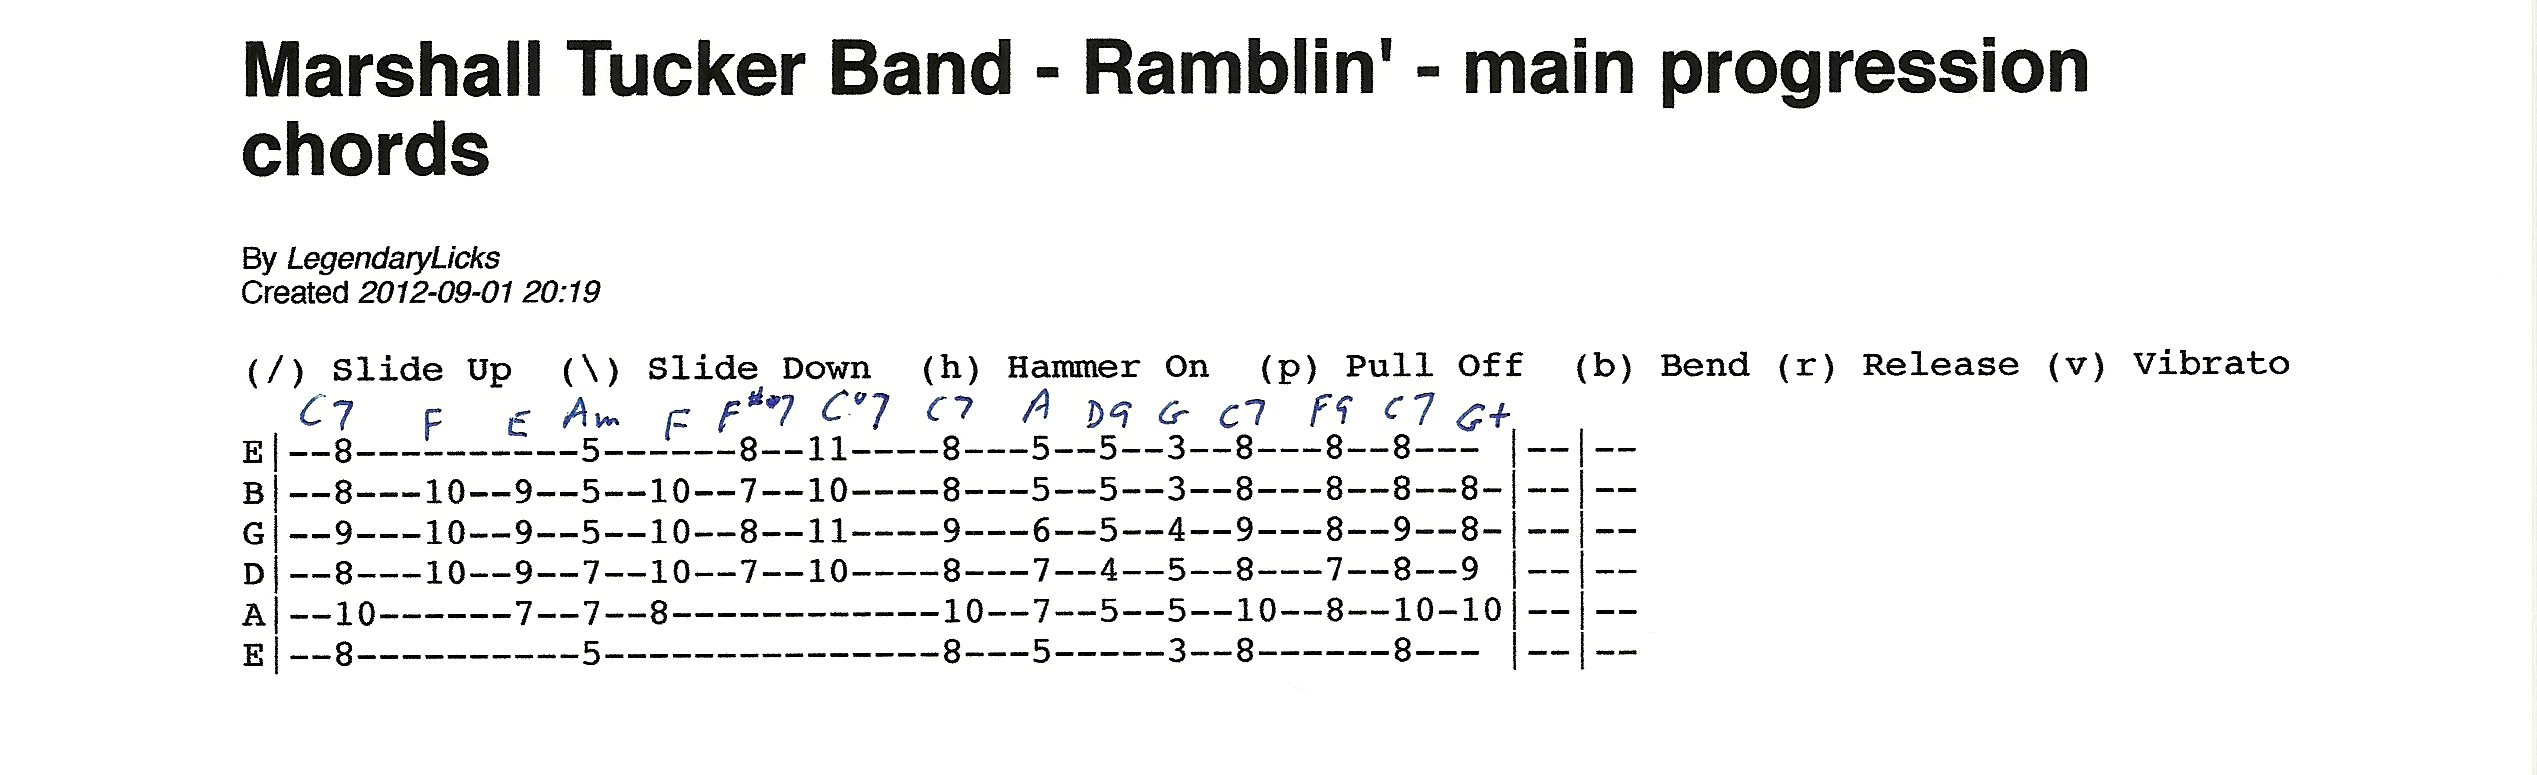 Marshall Tucker Band Ramblin Basic Guitar Chord Progression